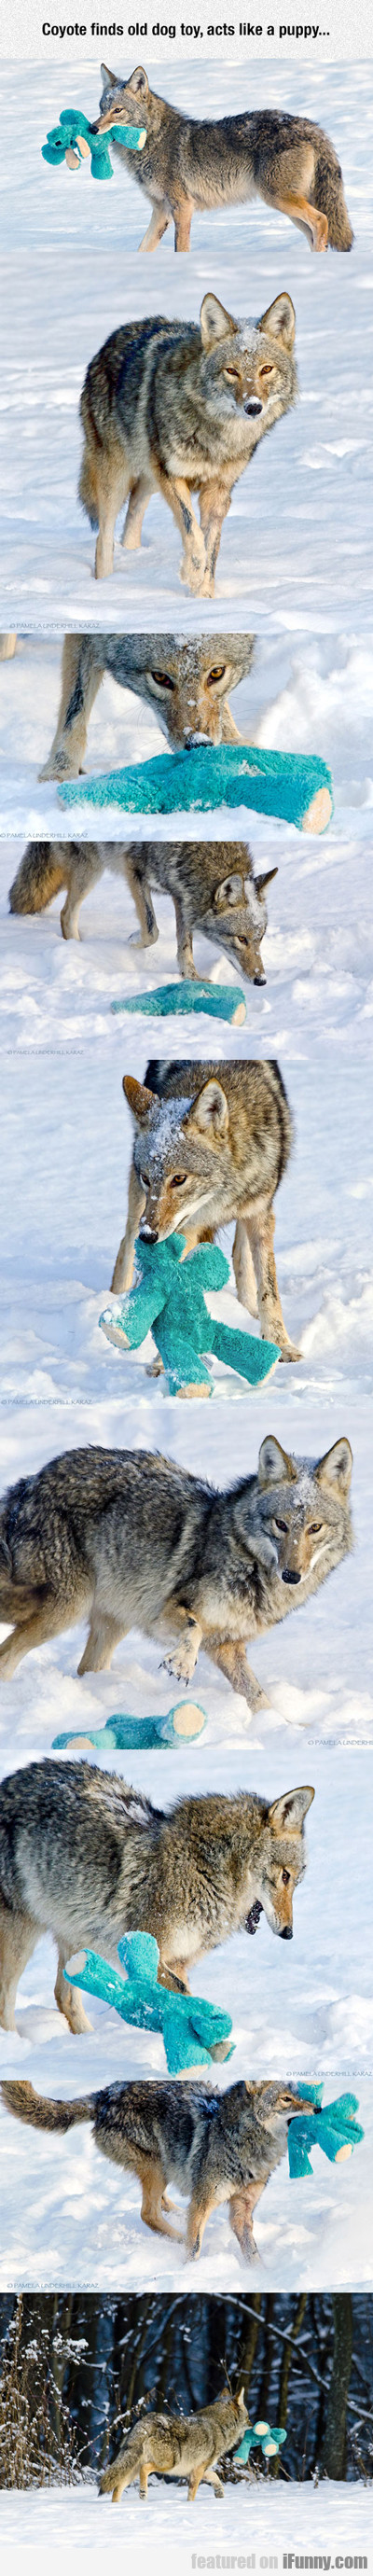 Coyote Finds Old Dog Toy...